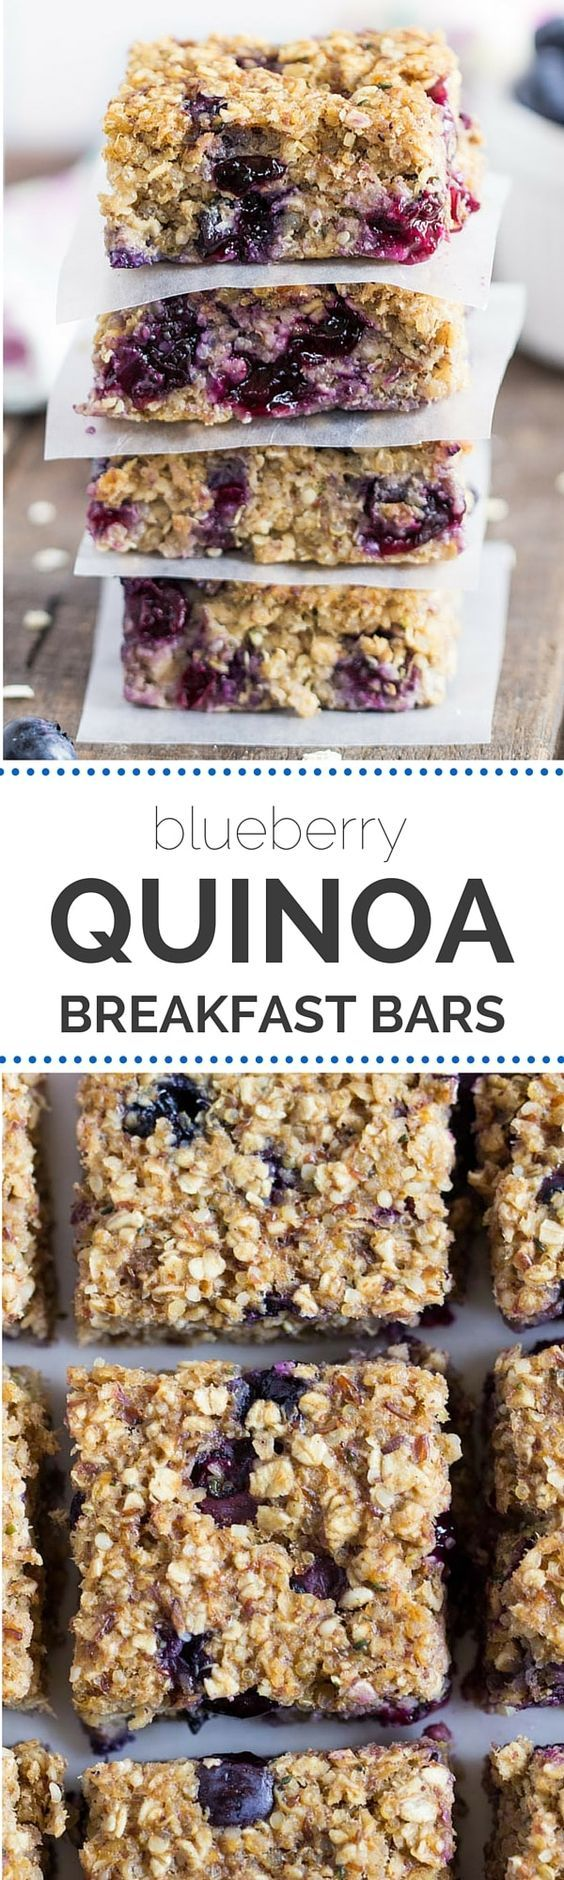 Blueberry Quinoa Breakfast Bars--theyre full of fresh, juicy blueberries, with a hint of tangy lemon...and theyre vegan!